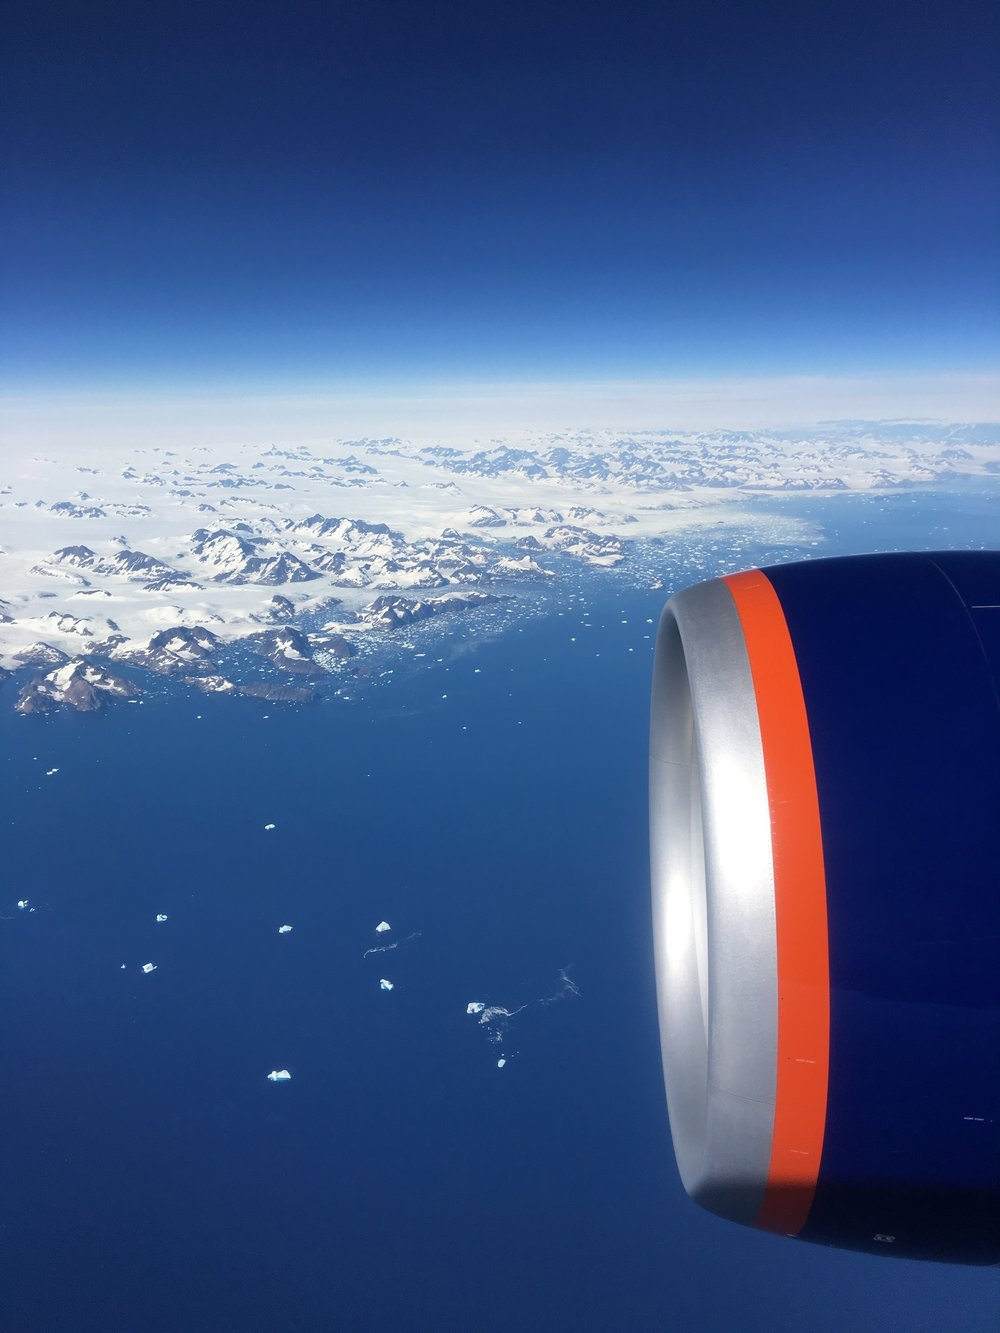 Heading back to the States. Can't say I didn't enjoy the view while flying over Greenland.